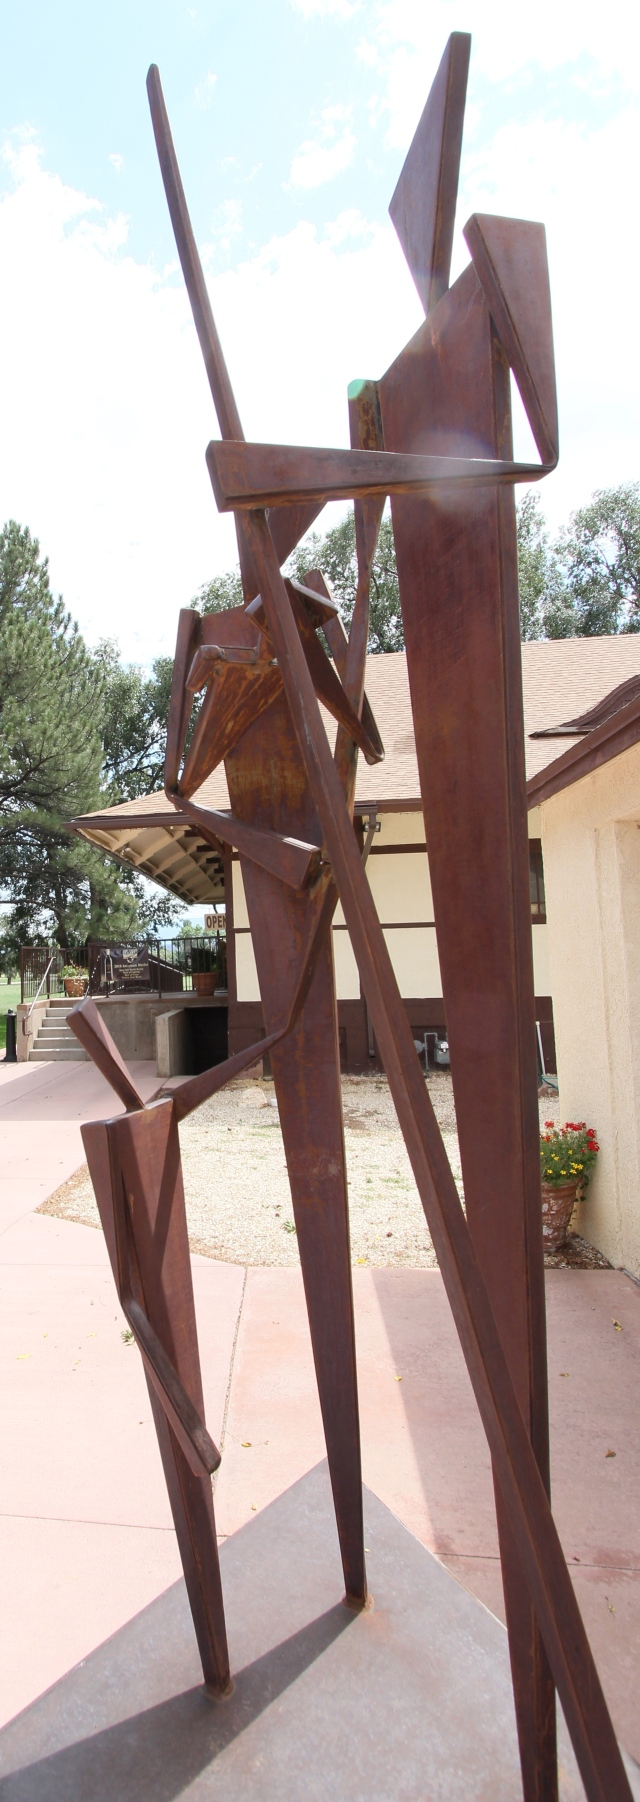 Statues at the winery